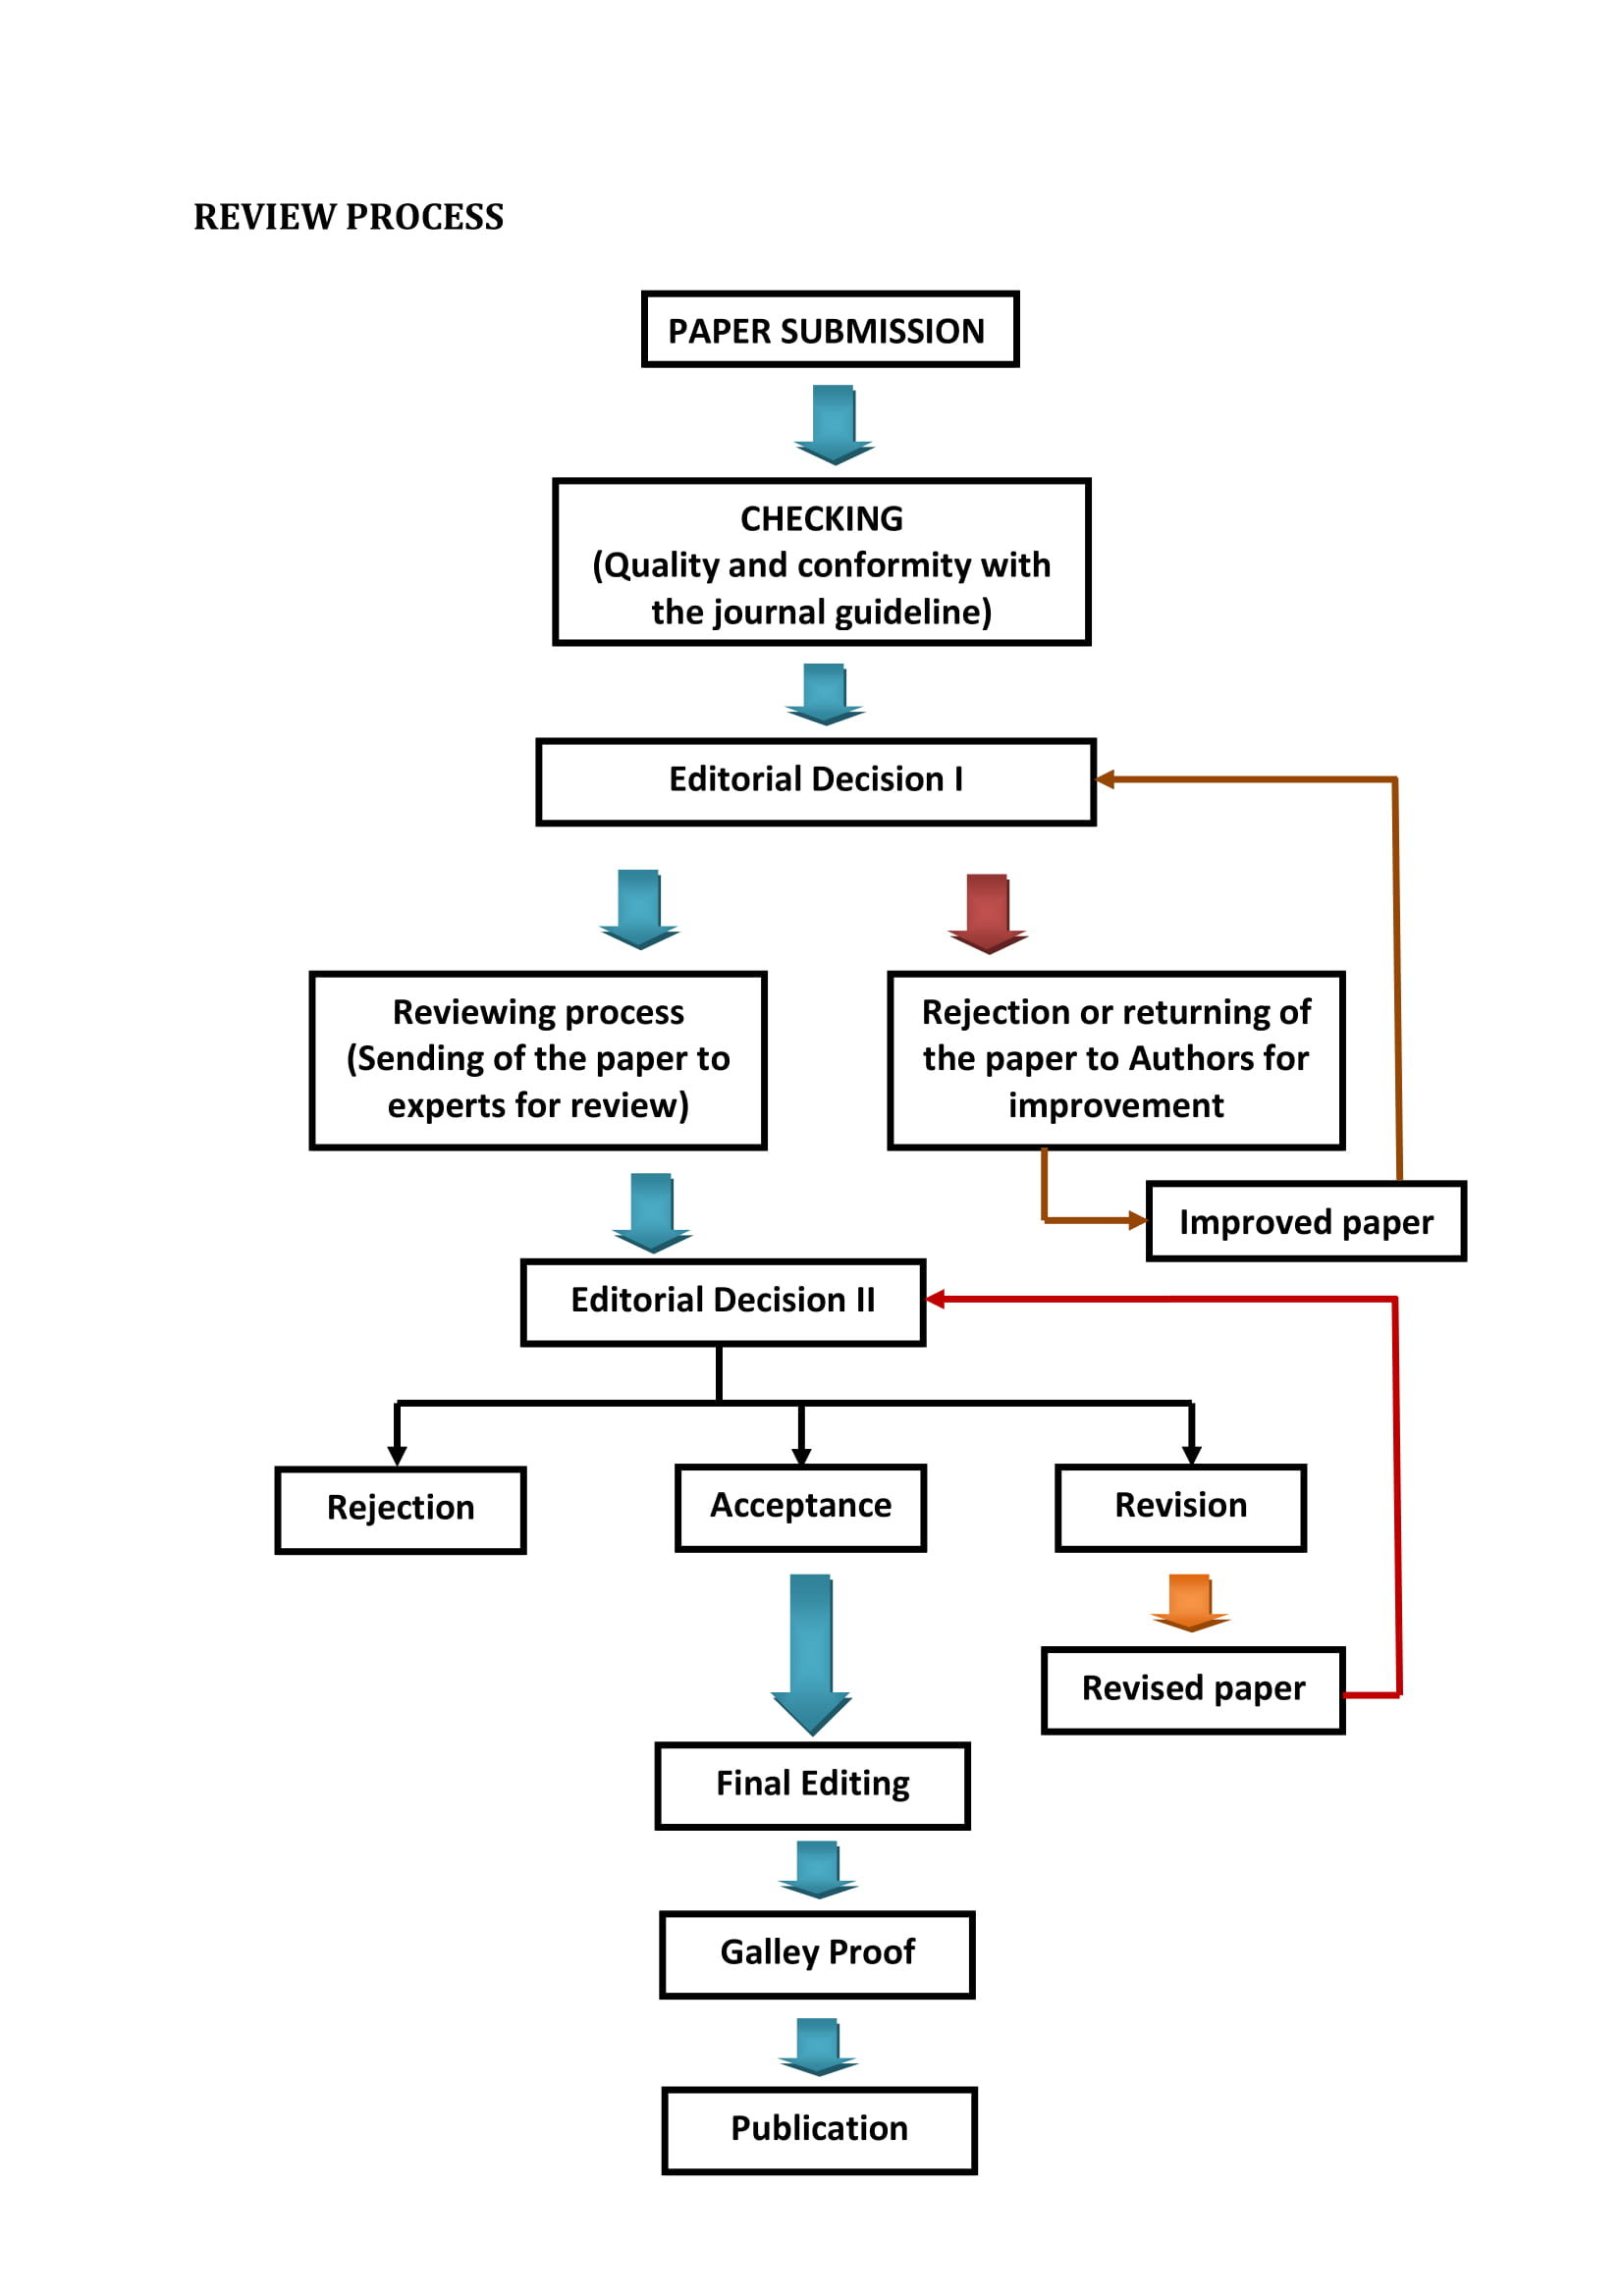 The Journal of Food Stability Review Process